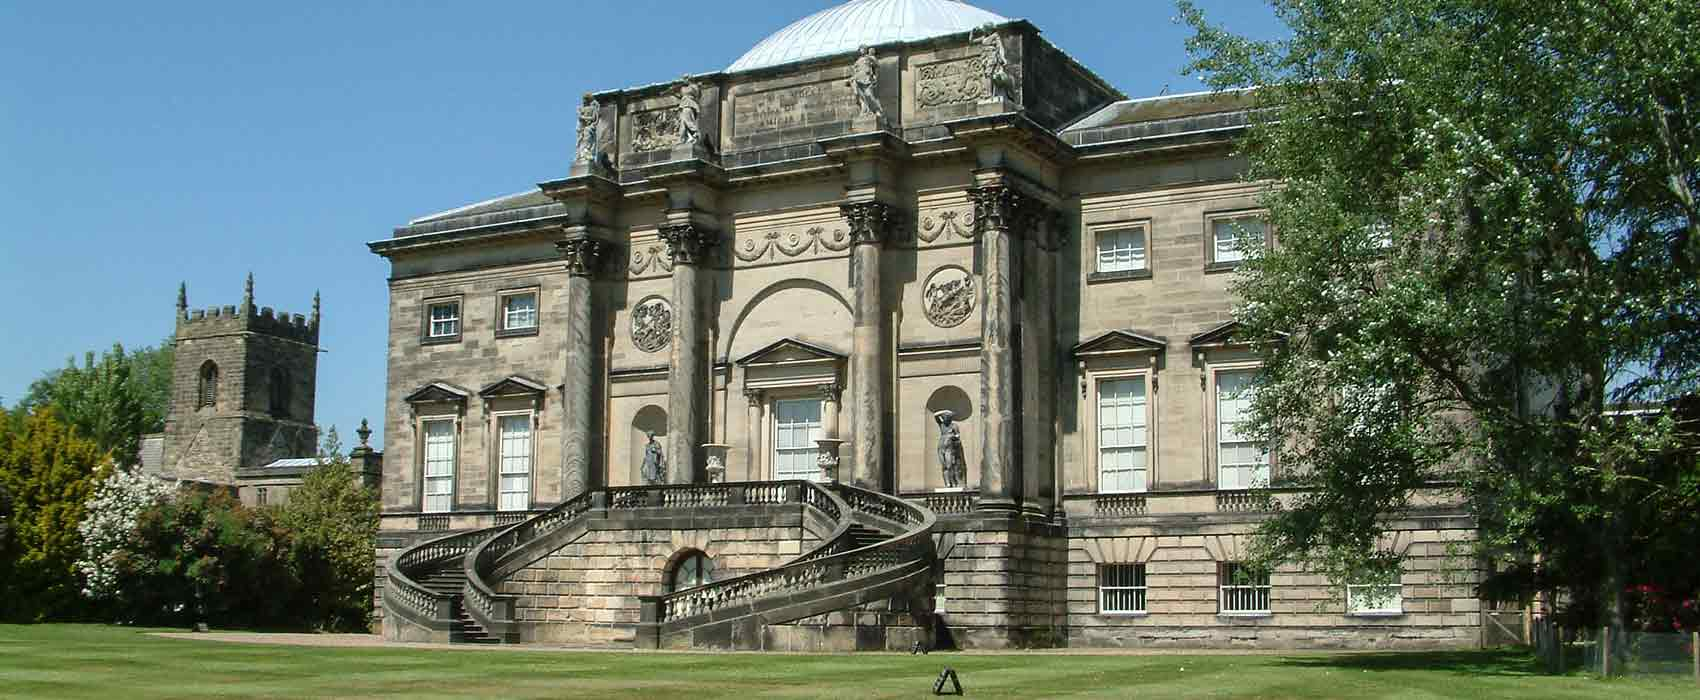 View or rear of Kedleston Hall across the grass